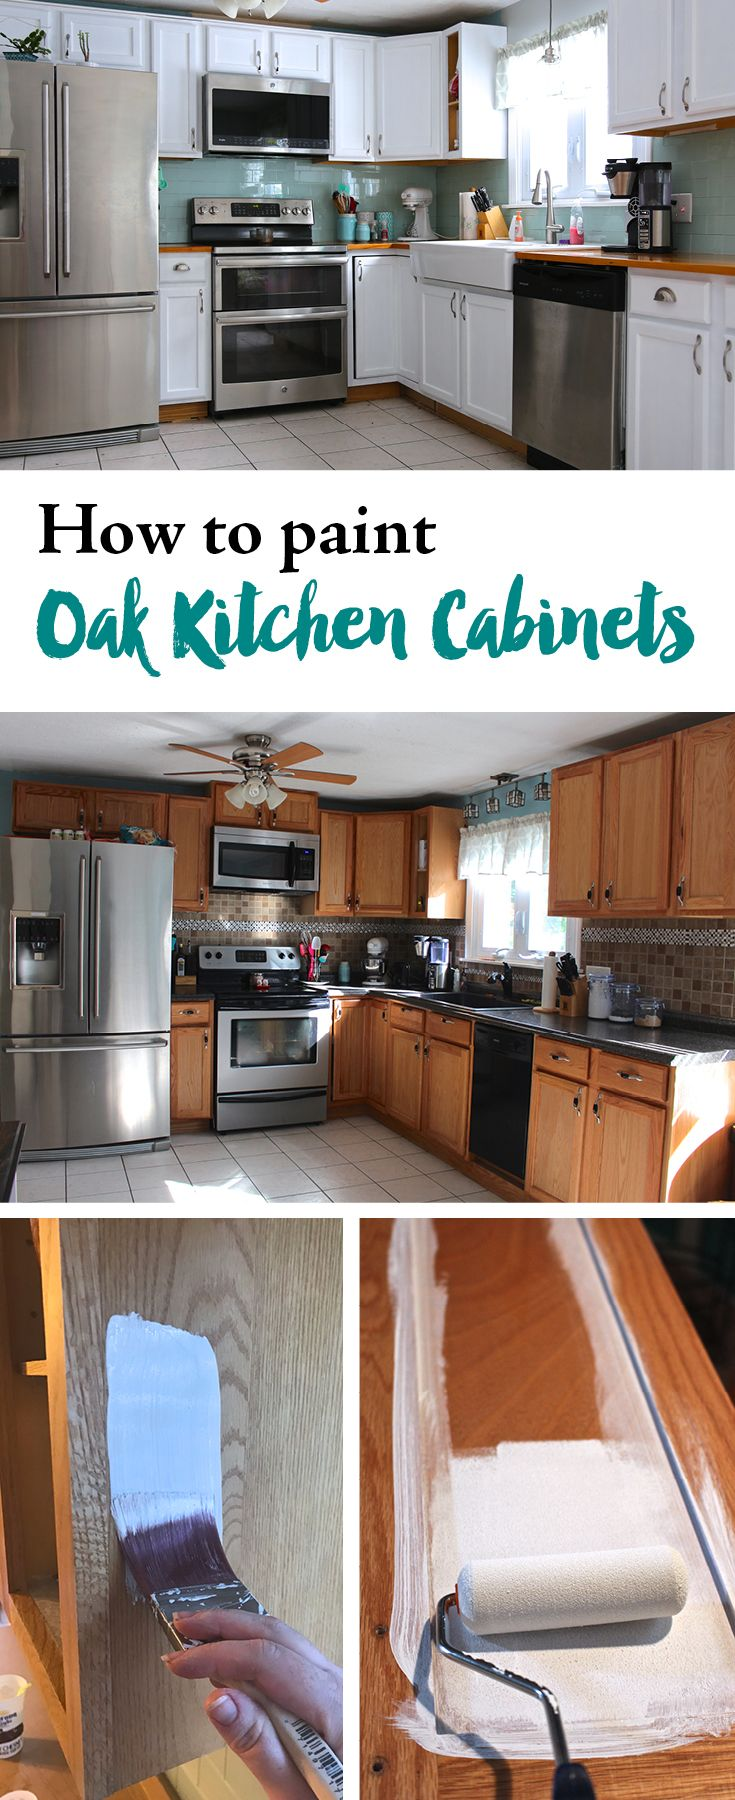 The time has come! It's time to paint some cabinets. Today I am going to  walk your through step by step how I painted my oak cabinets with DecoArt  Satin Enamel paint. Now if you haven't been following along on my kitchen  renovation make sure to to check out all the projects here. Including  c